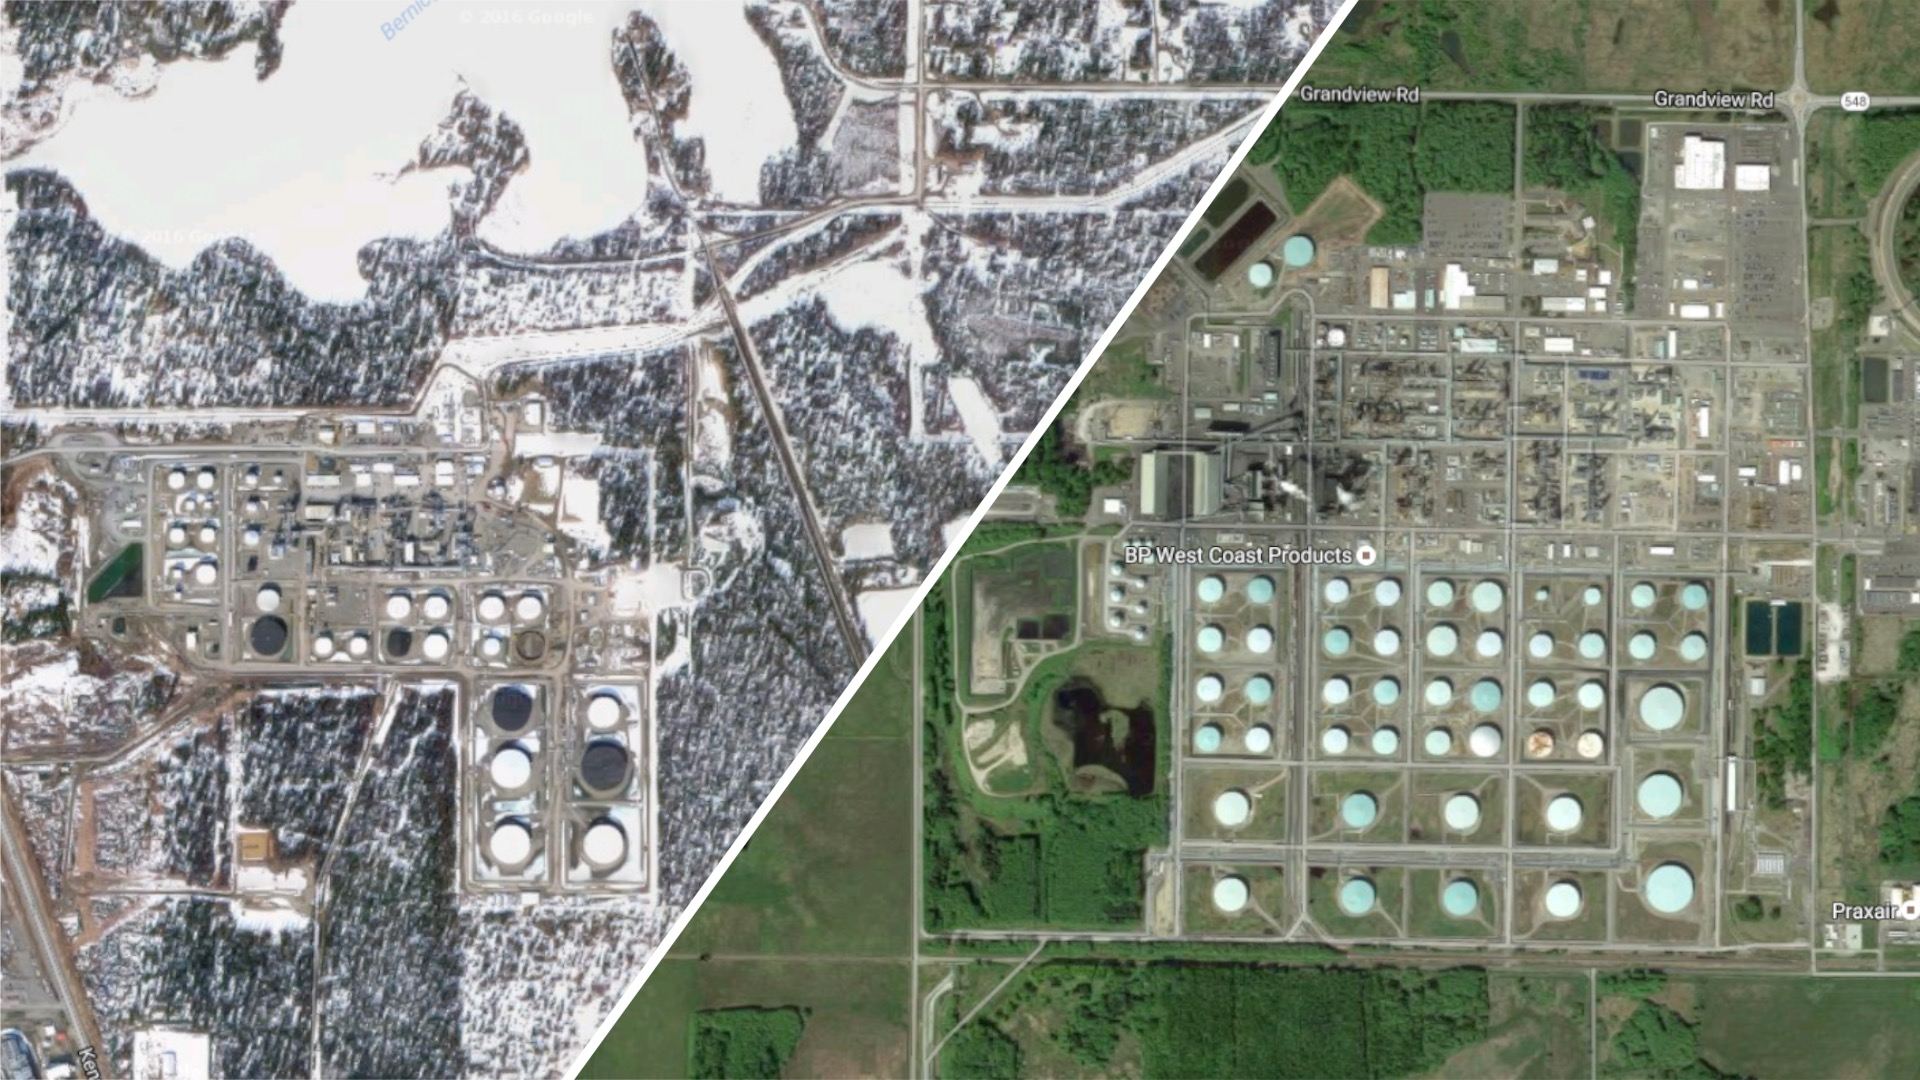 Nikiski Refinery vs Cherry Point Refinery